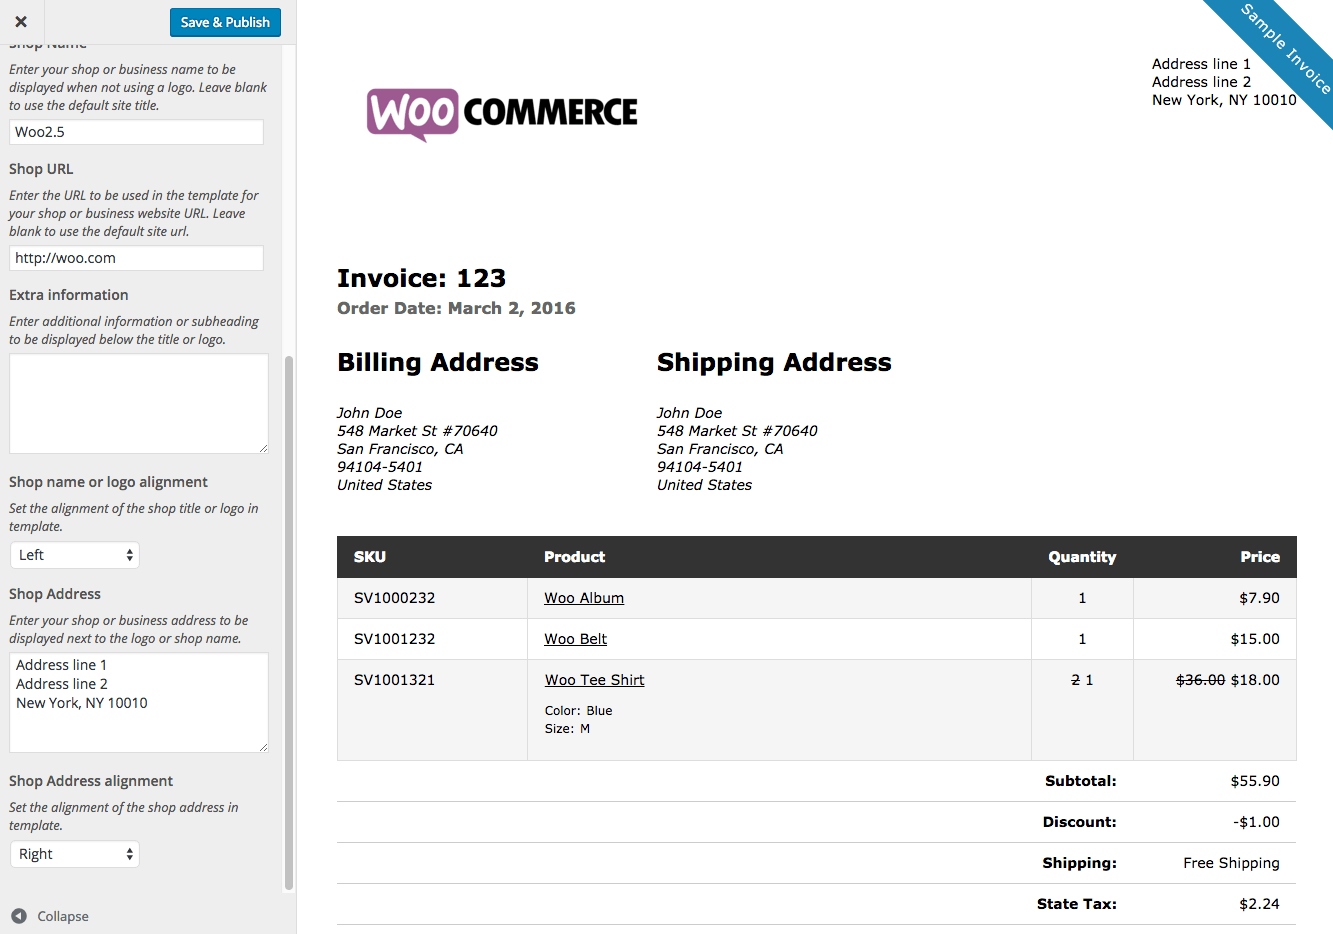 Hucareus  Unique Woocommerce Print Invoices Amp Packing Lists  Woocommerce Docs With Remarkable Woocommerce Print Invoices  Packing Lists Customizer With Appealing Easy Invoicing Software Free Also Translation Invoice Sample In Addition How To Set Out An Invoice And What Is A Proforma Invoice Used For As Well As Automatic Invoice Generator Additionally Credit Invoices From Docswoocommercecom With Hucareus  Remarkable Woocommerce Print Invoices Amp Packing Lists  Woocommerce Docs With Appealing Woocommerce Print Invoices  Packing Lists Customizer And Unique Easy Invoicing Software Free Also Translation Invoice Sample In Addition How To Set Out An Invoice From Docswoocommercecom